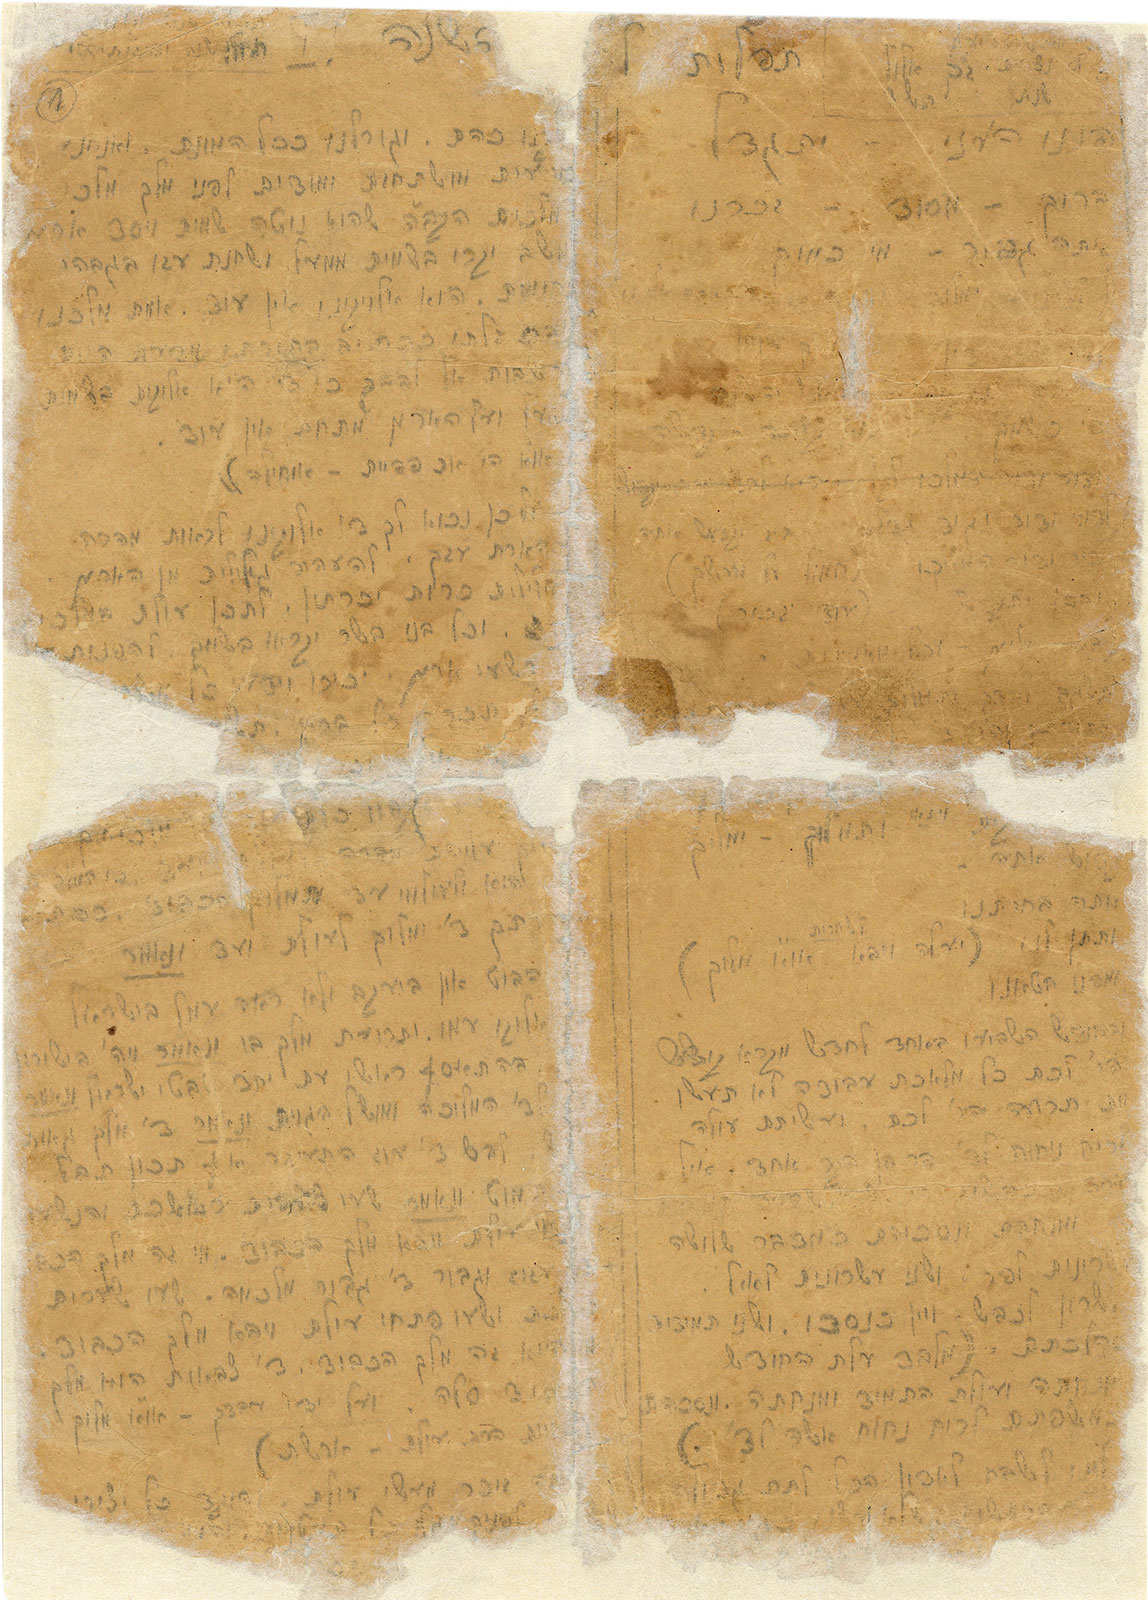 Prayers for the new year written in pencil on cement bags by Naftali Stern on the eve of the Jewish year 5705 – 1944 in the Wolfsberg forced labor camp in Germany